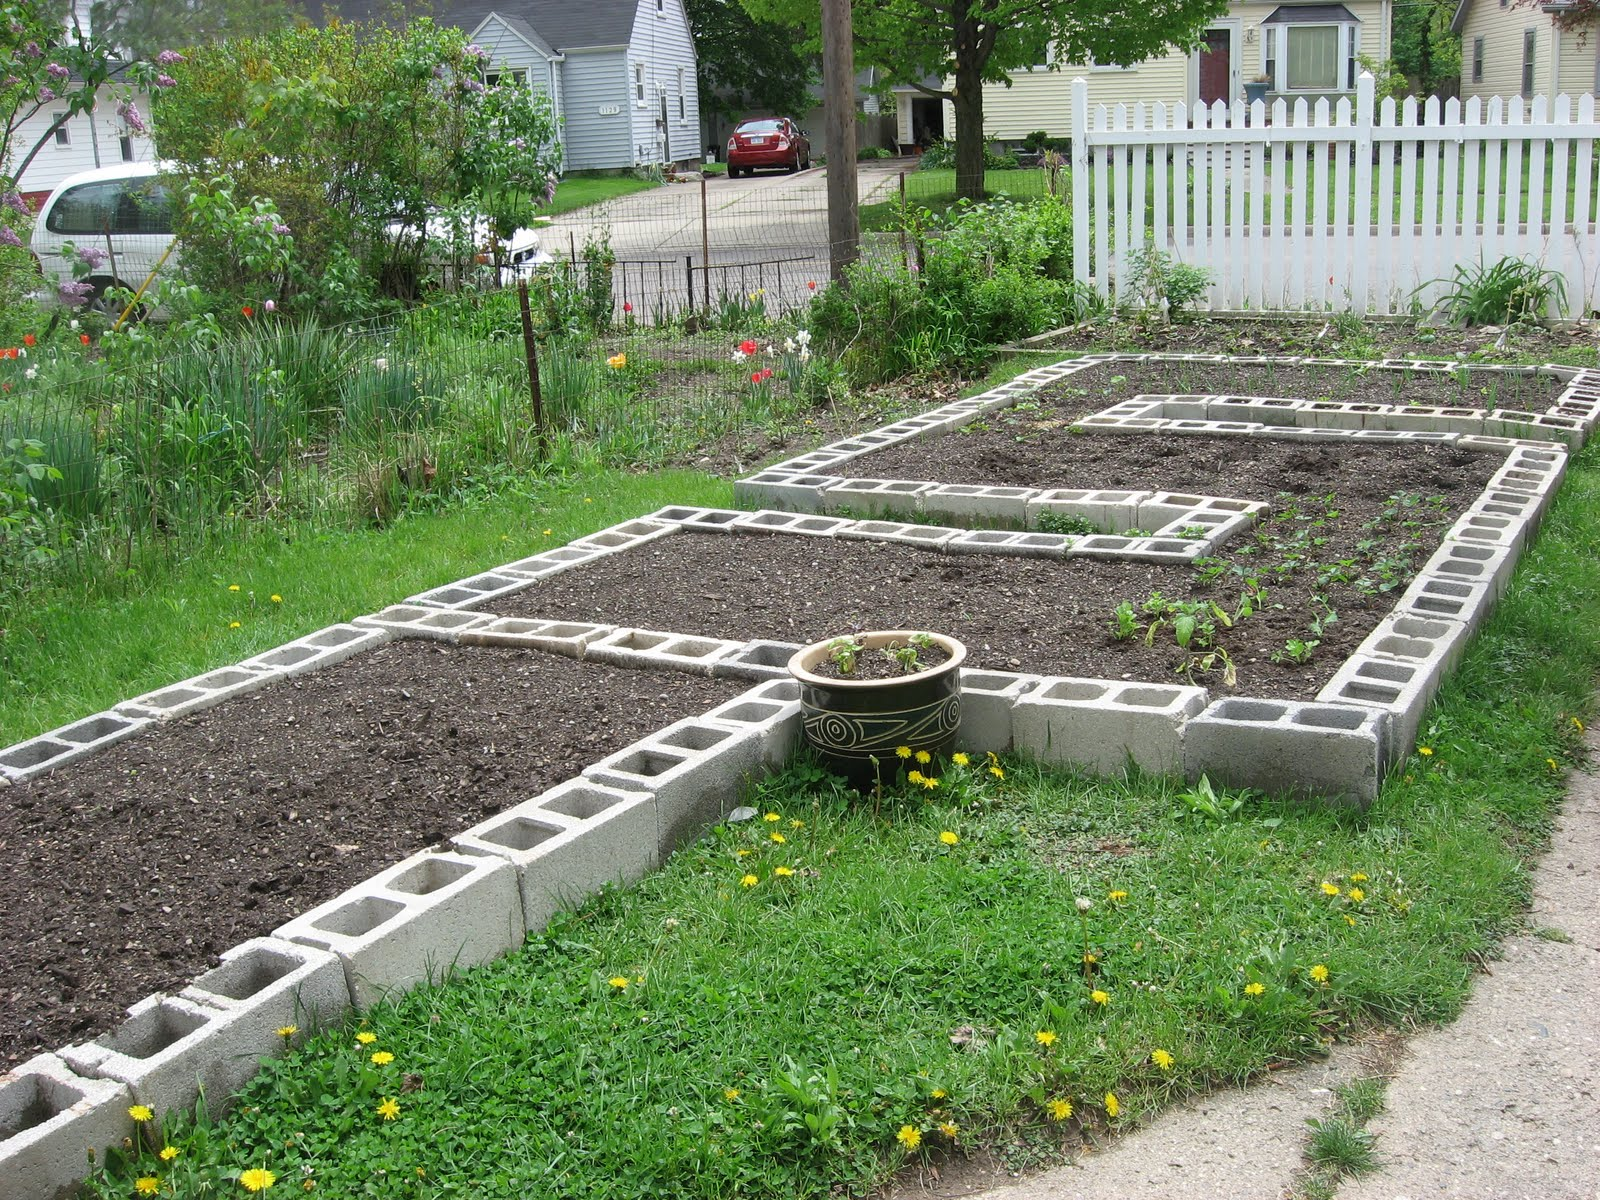 Happy Home Build your own Concrete Block Raised Beds